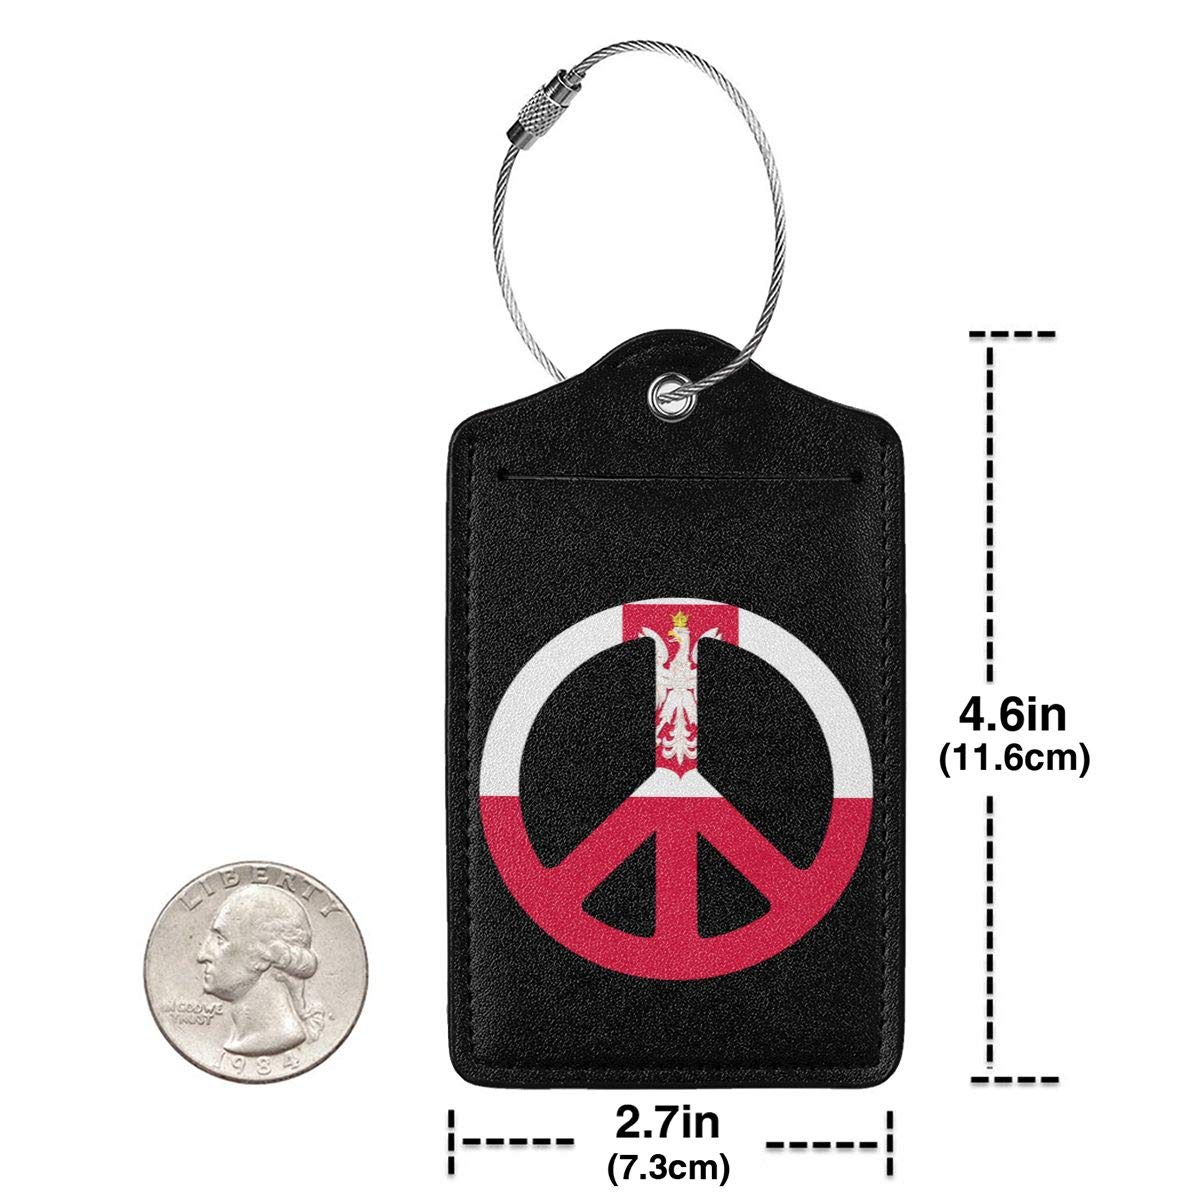 Poland Flag Peace Symbol Leather Luggage Tags Suitcase Tag Travel Bag Labels With Privacy Cover For Men Women 2 Pack 4 Pack